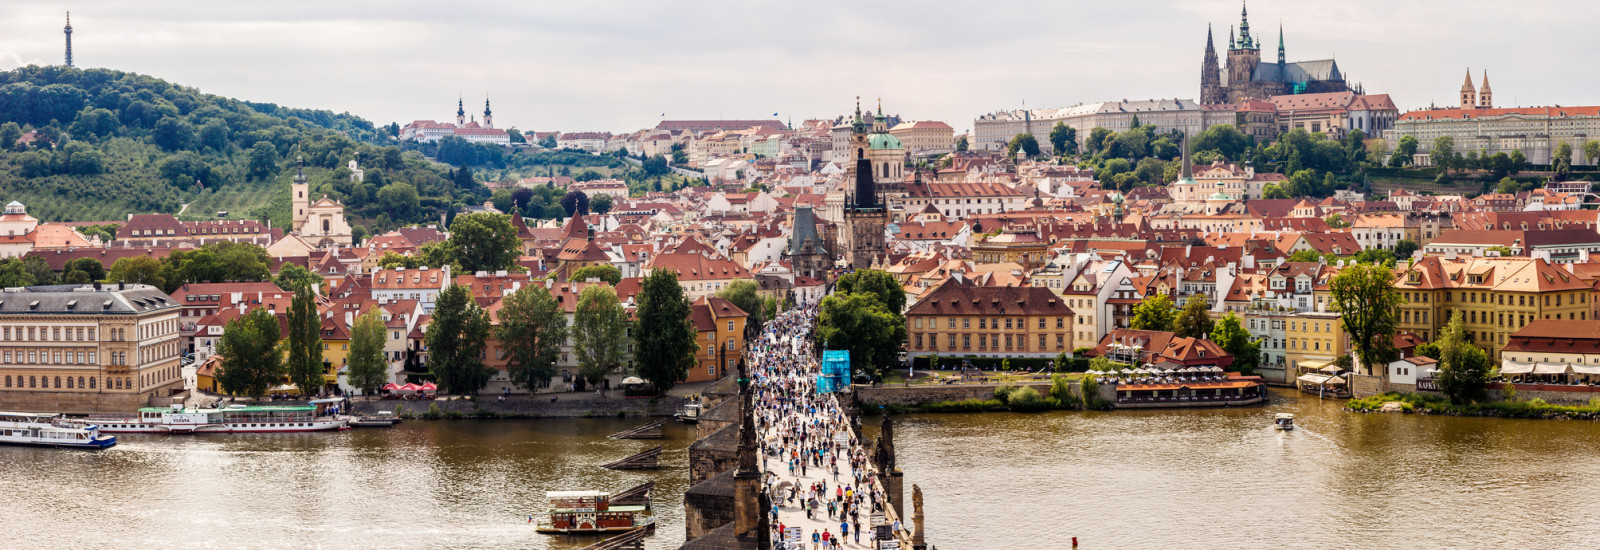 PRAGUE, CZECH REPUBLIC - JUNE 11: Tourists on Charles Bridge, June 11, 2013, Prague,Czech Republic. Annually Prague is visited by more than 3,5 million tourists